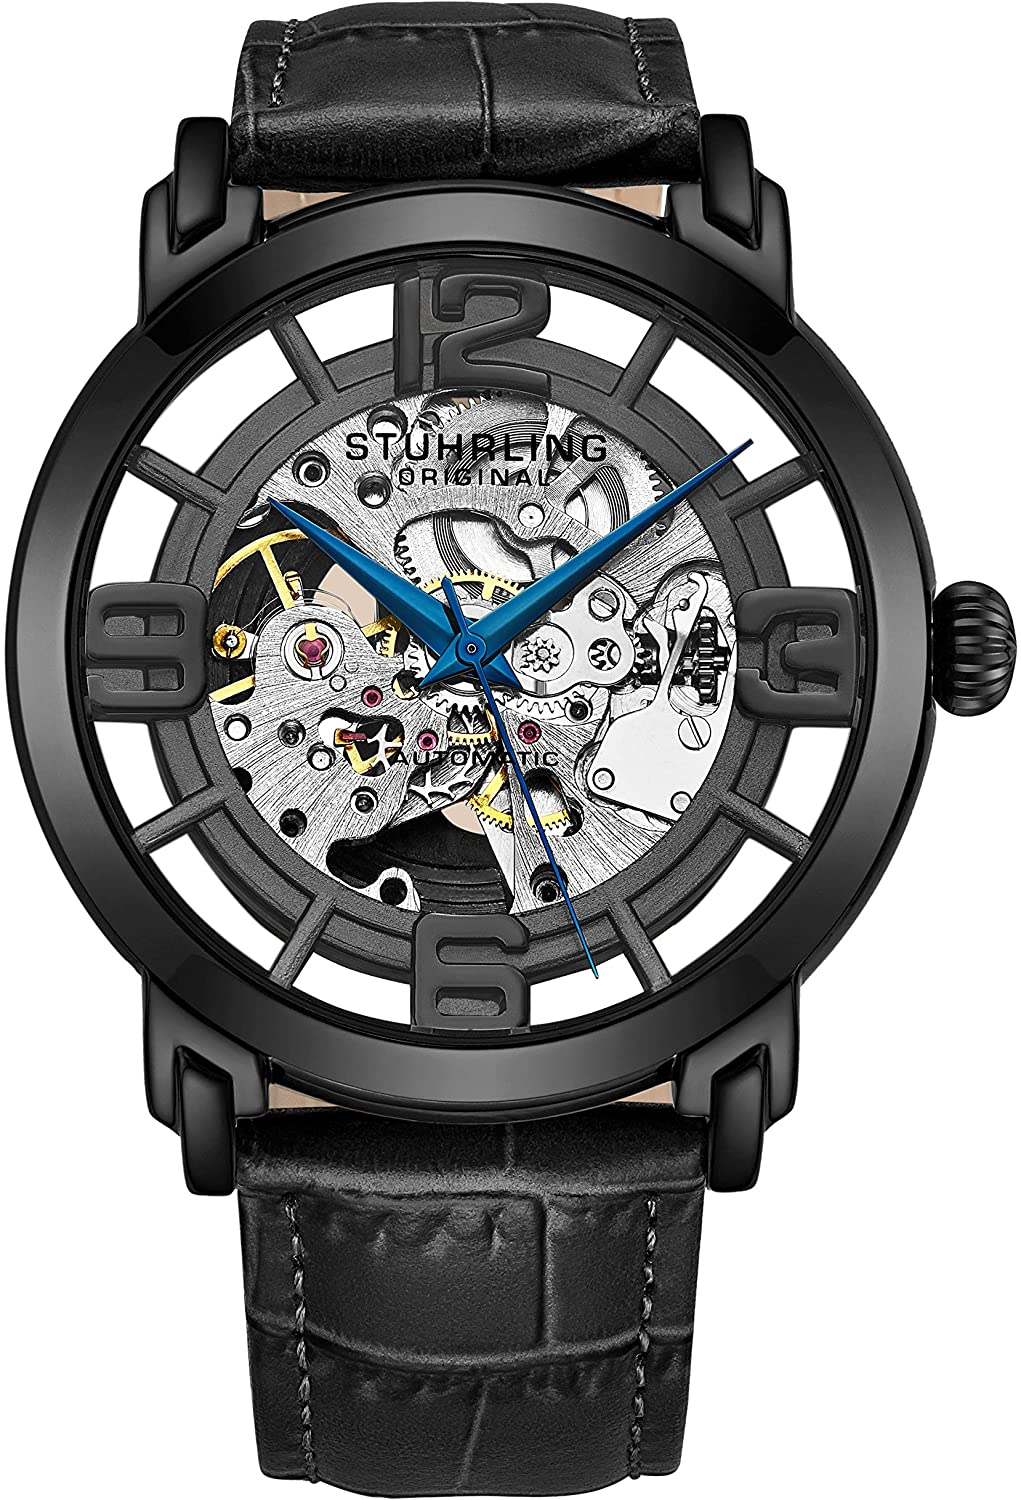 Stuhrling Original Skeleton Mens Watch - Winchester Mechanical Automatic Watch Self Wind Mens Dress Watch - with Premium Leather Band